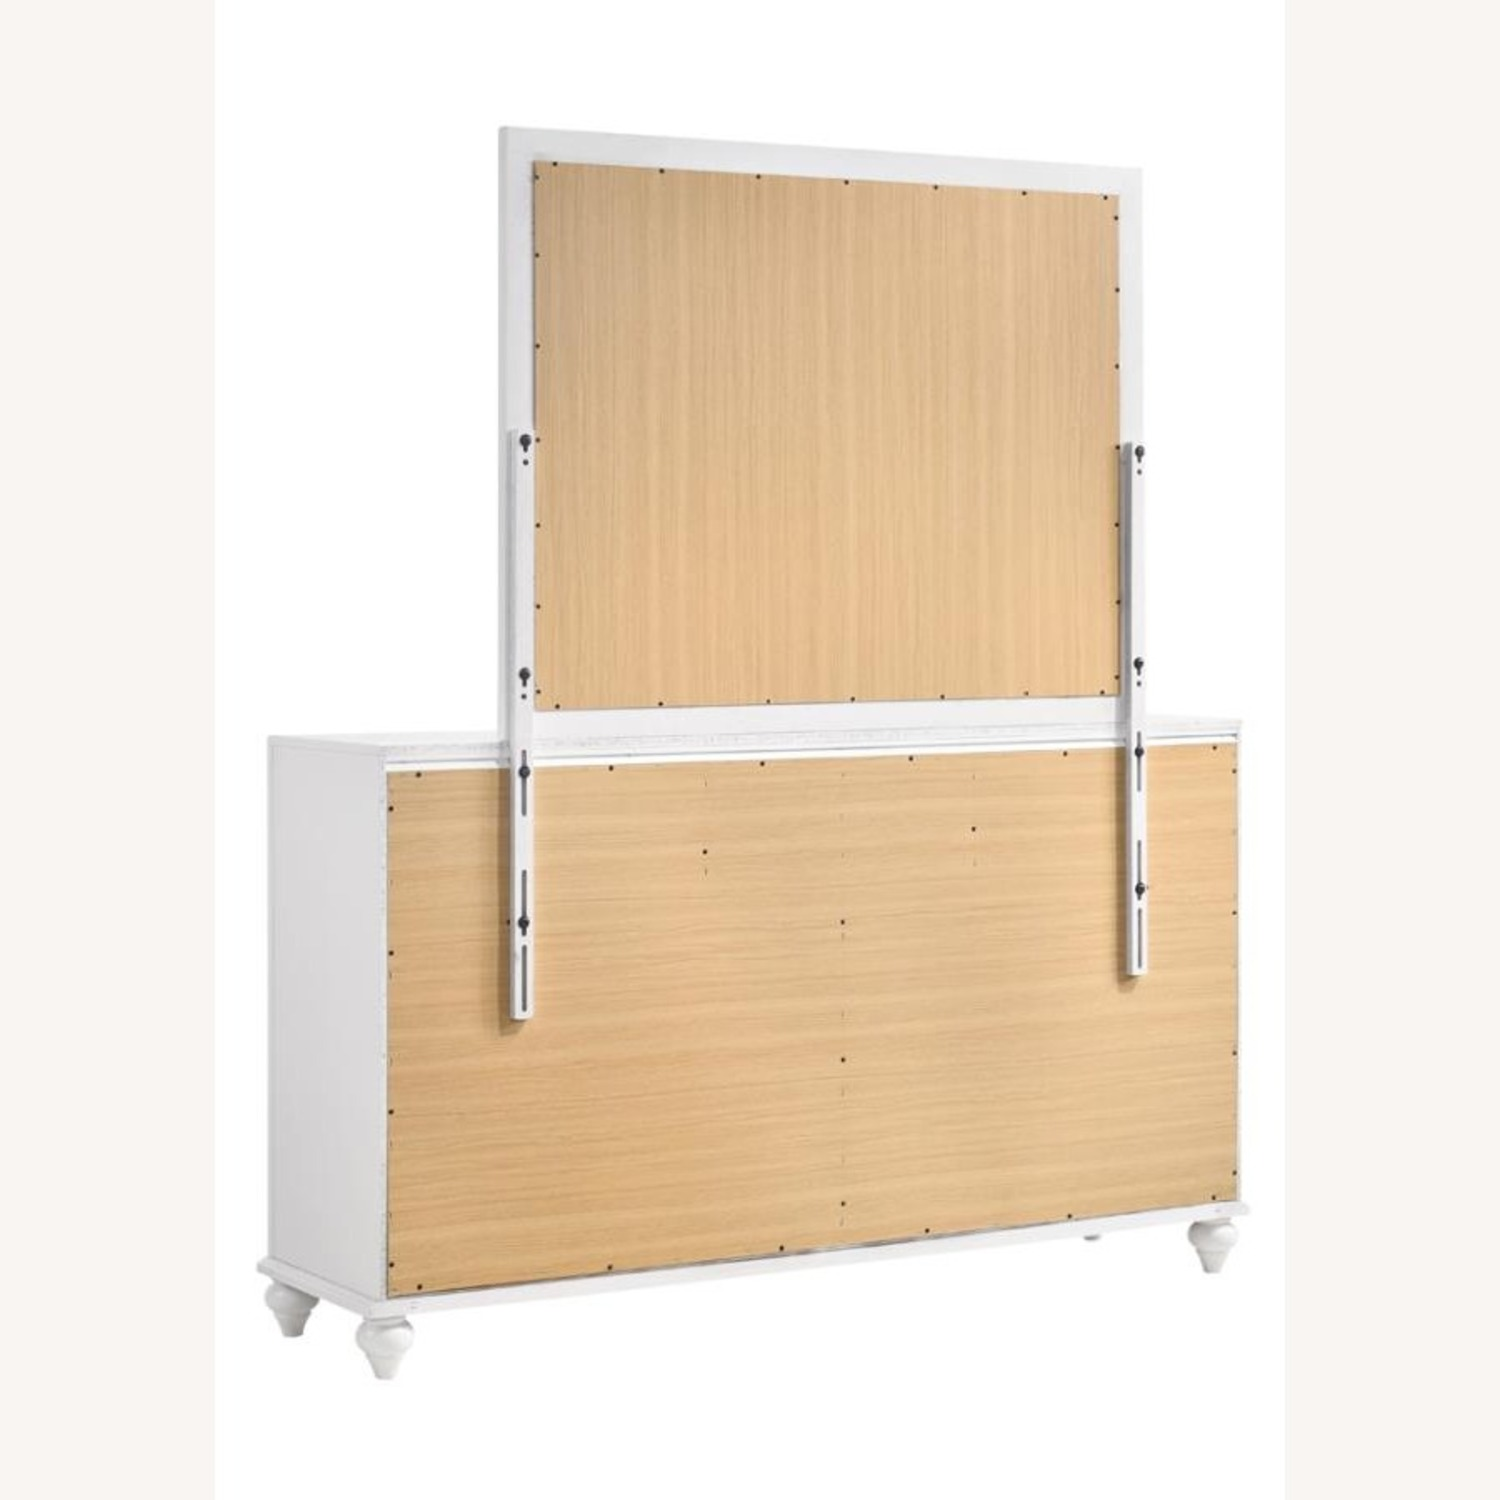 Mirror Crafted In White Wood Finish - image-2